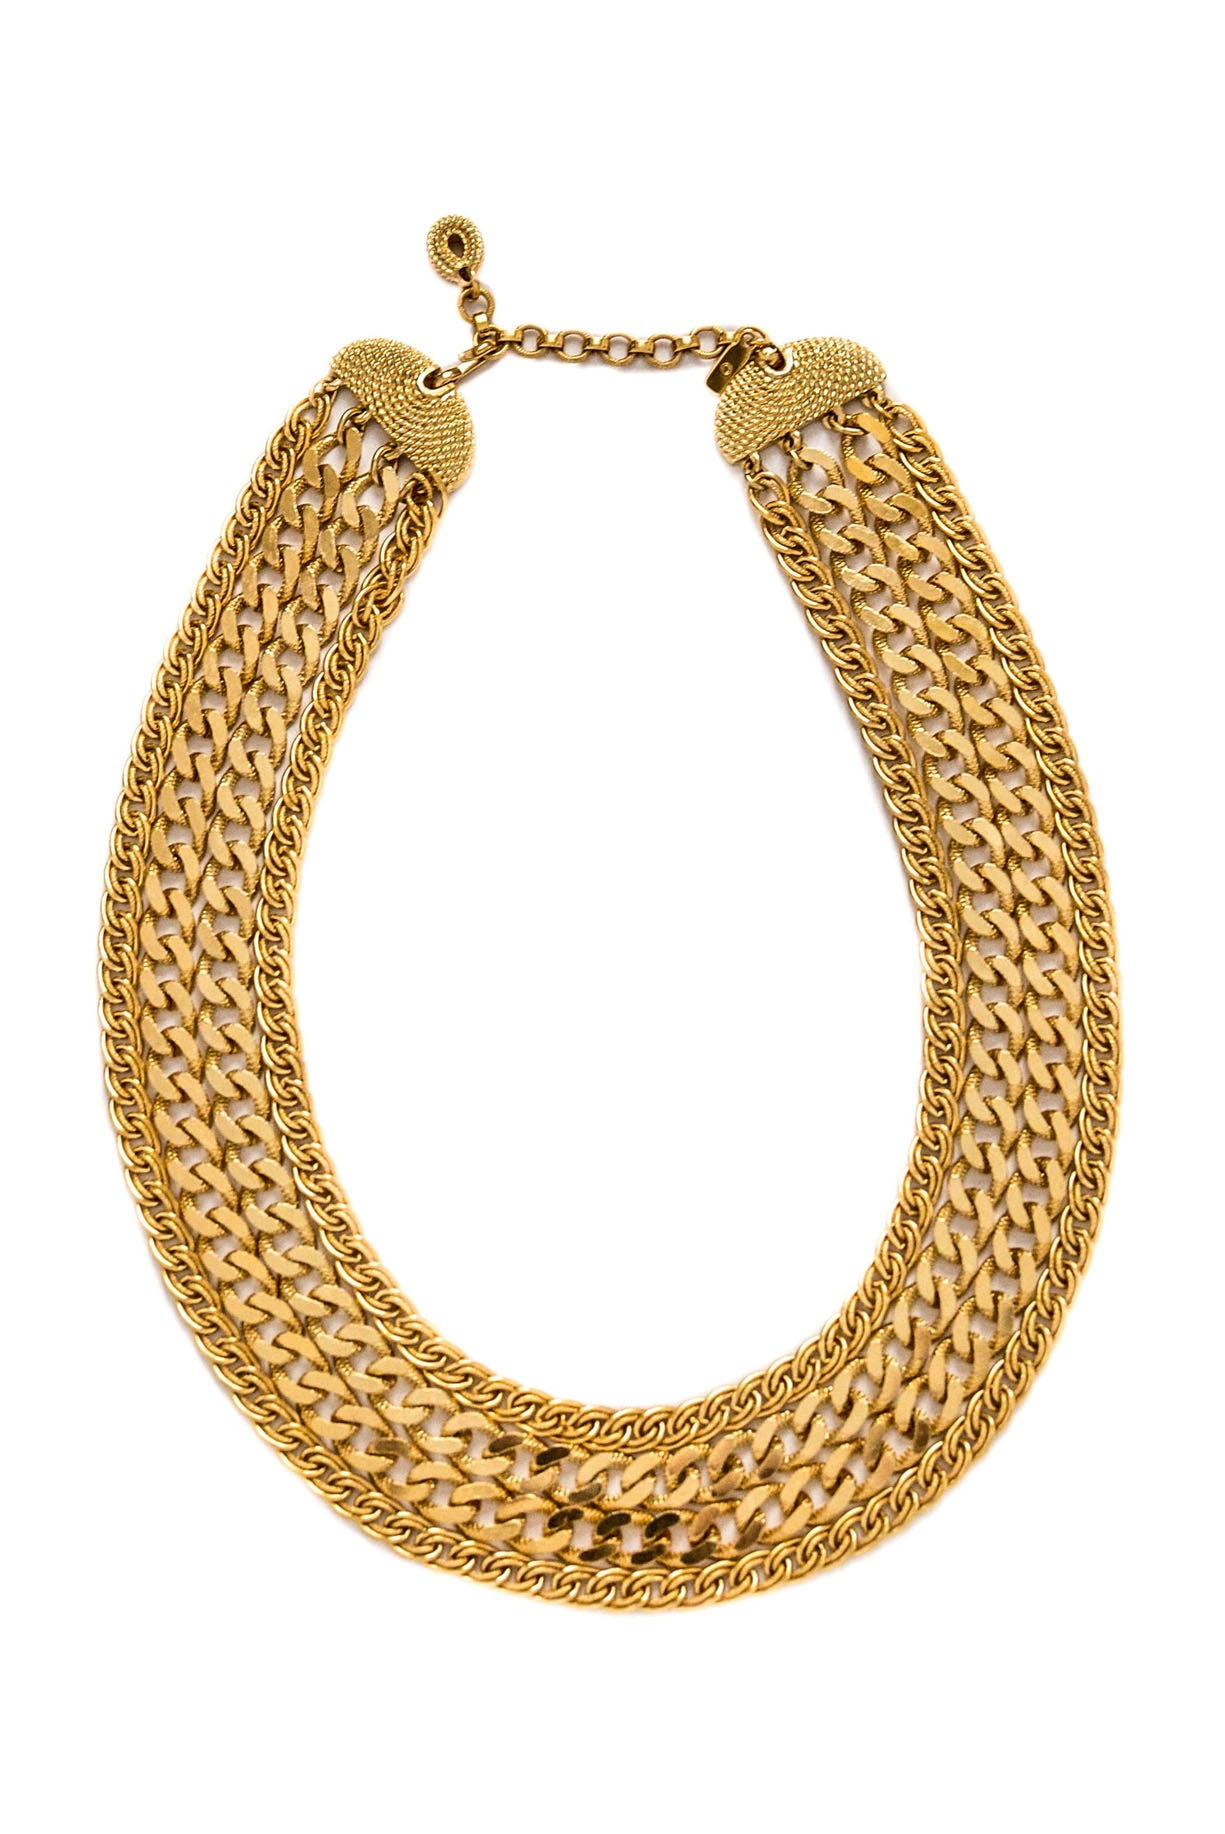 Vintage Multi Layered Chain Necklace from Sweet and Spark